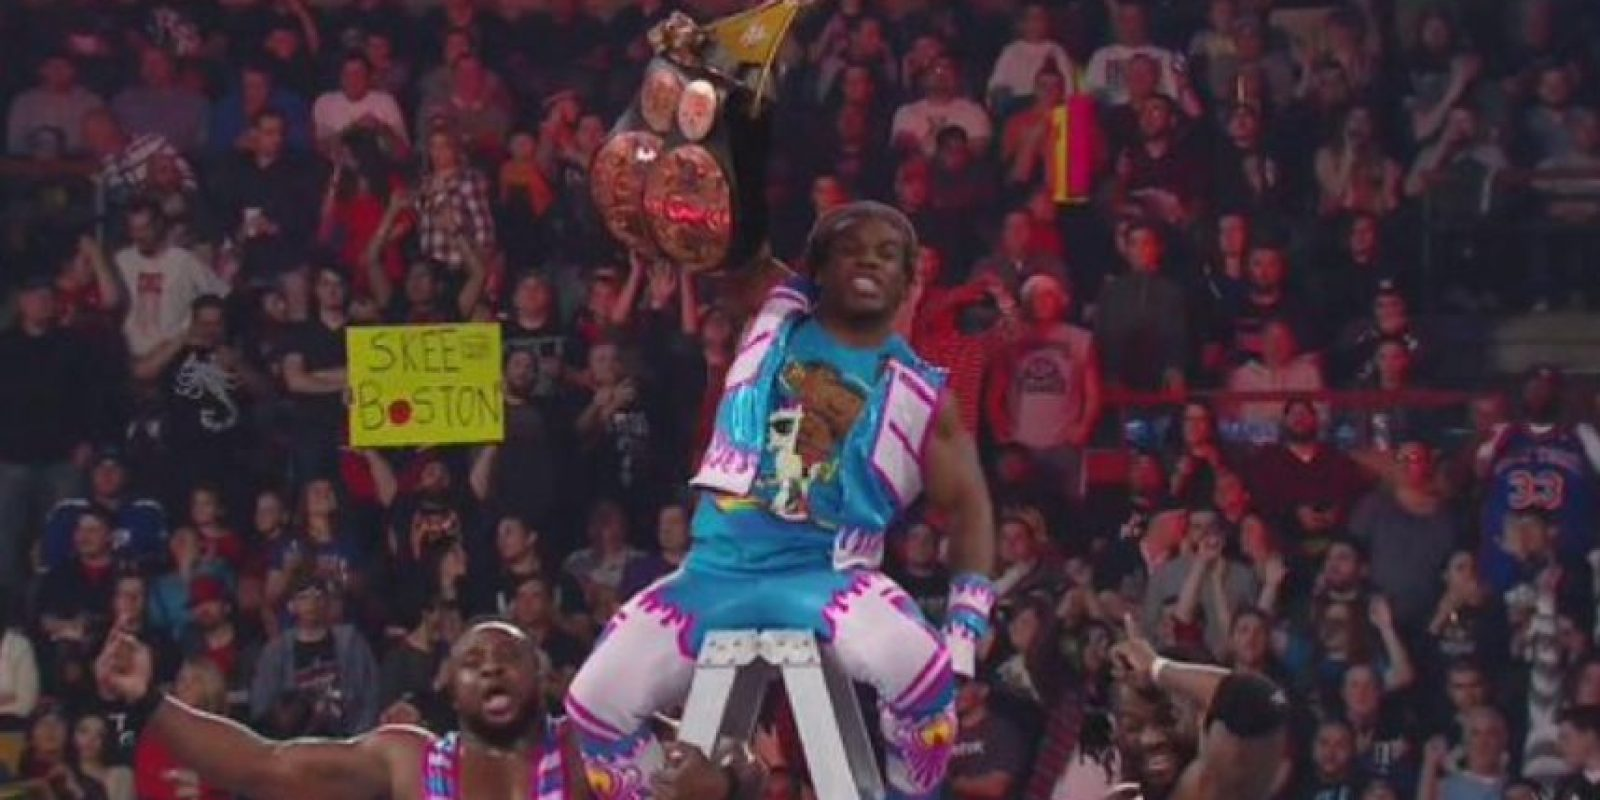 Al final, Kofi Kingston dio el título a The New Day Foto: WWE